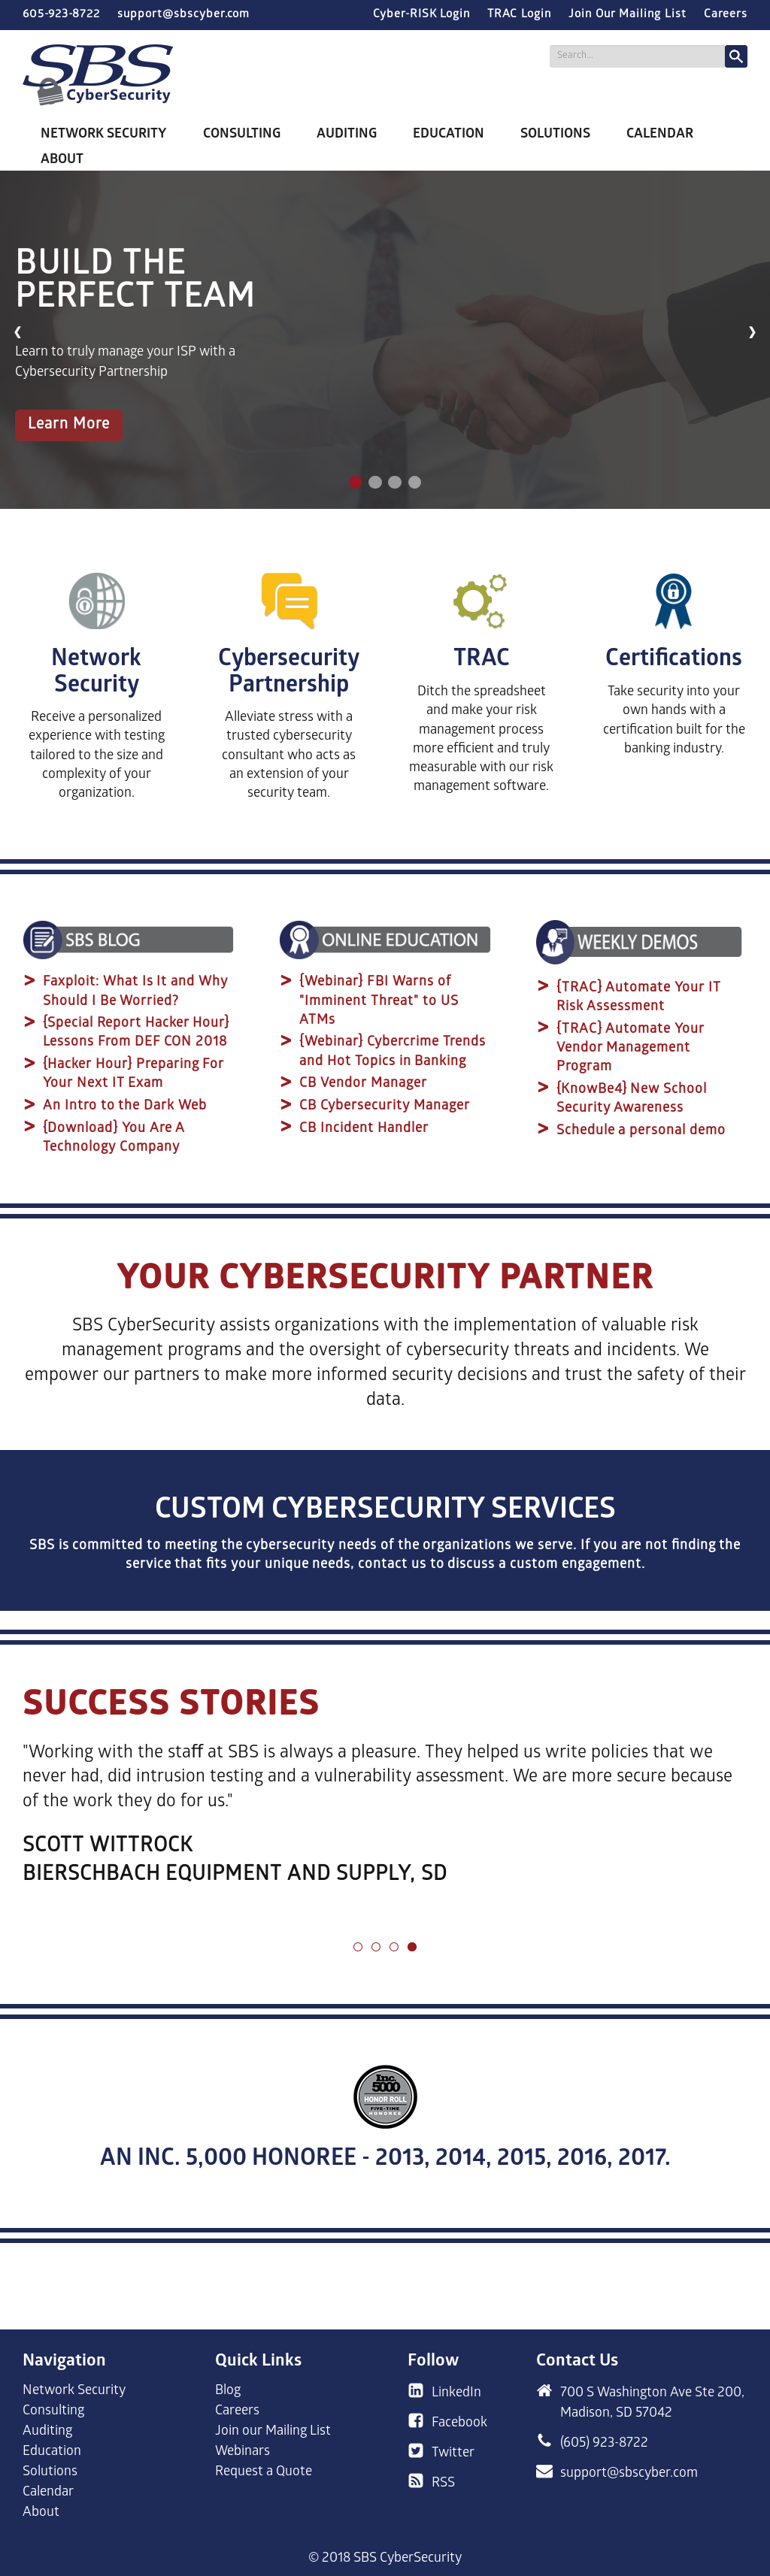 SBS CyberSecurity Competitors, Revenue and Employees - Owler